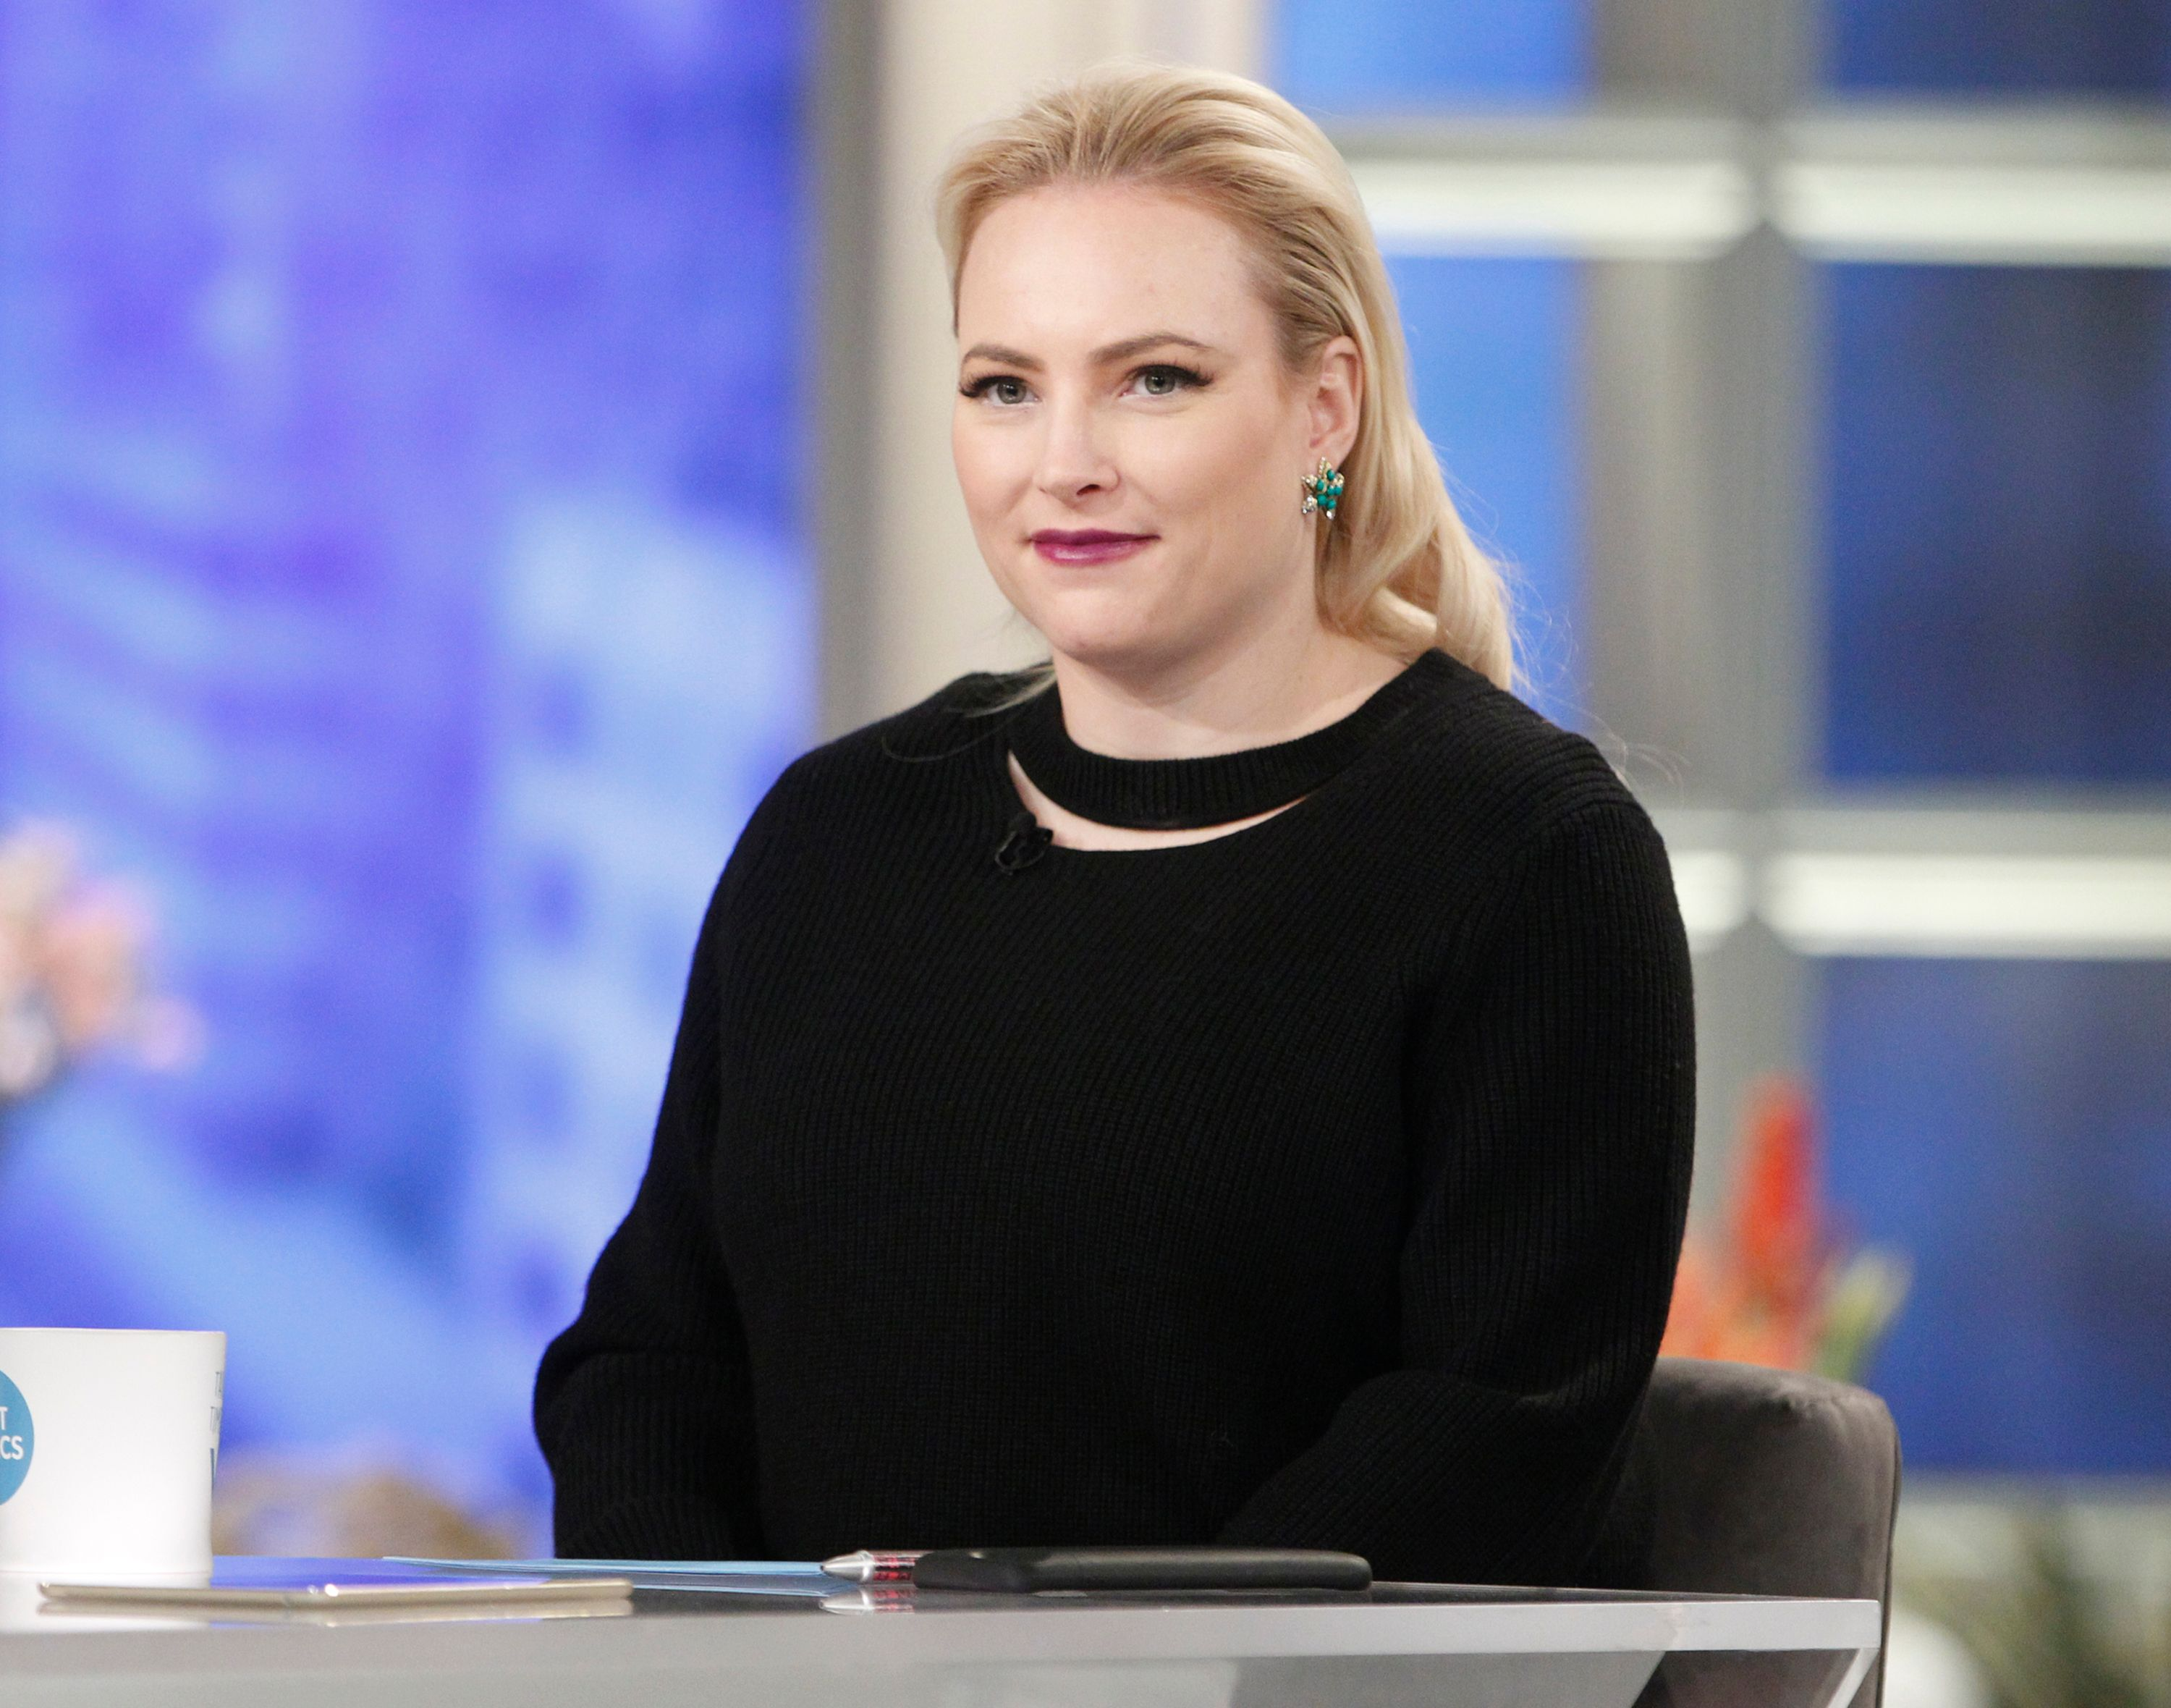 """Meghan McCain on season 21 of ABC's """"The View"""" on January 8, 2018 